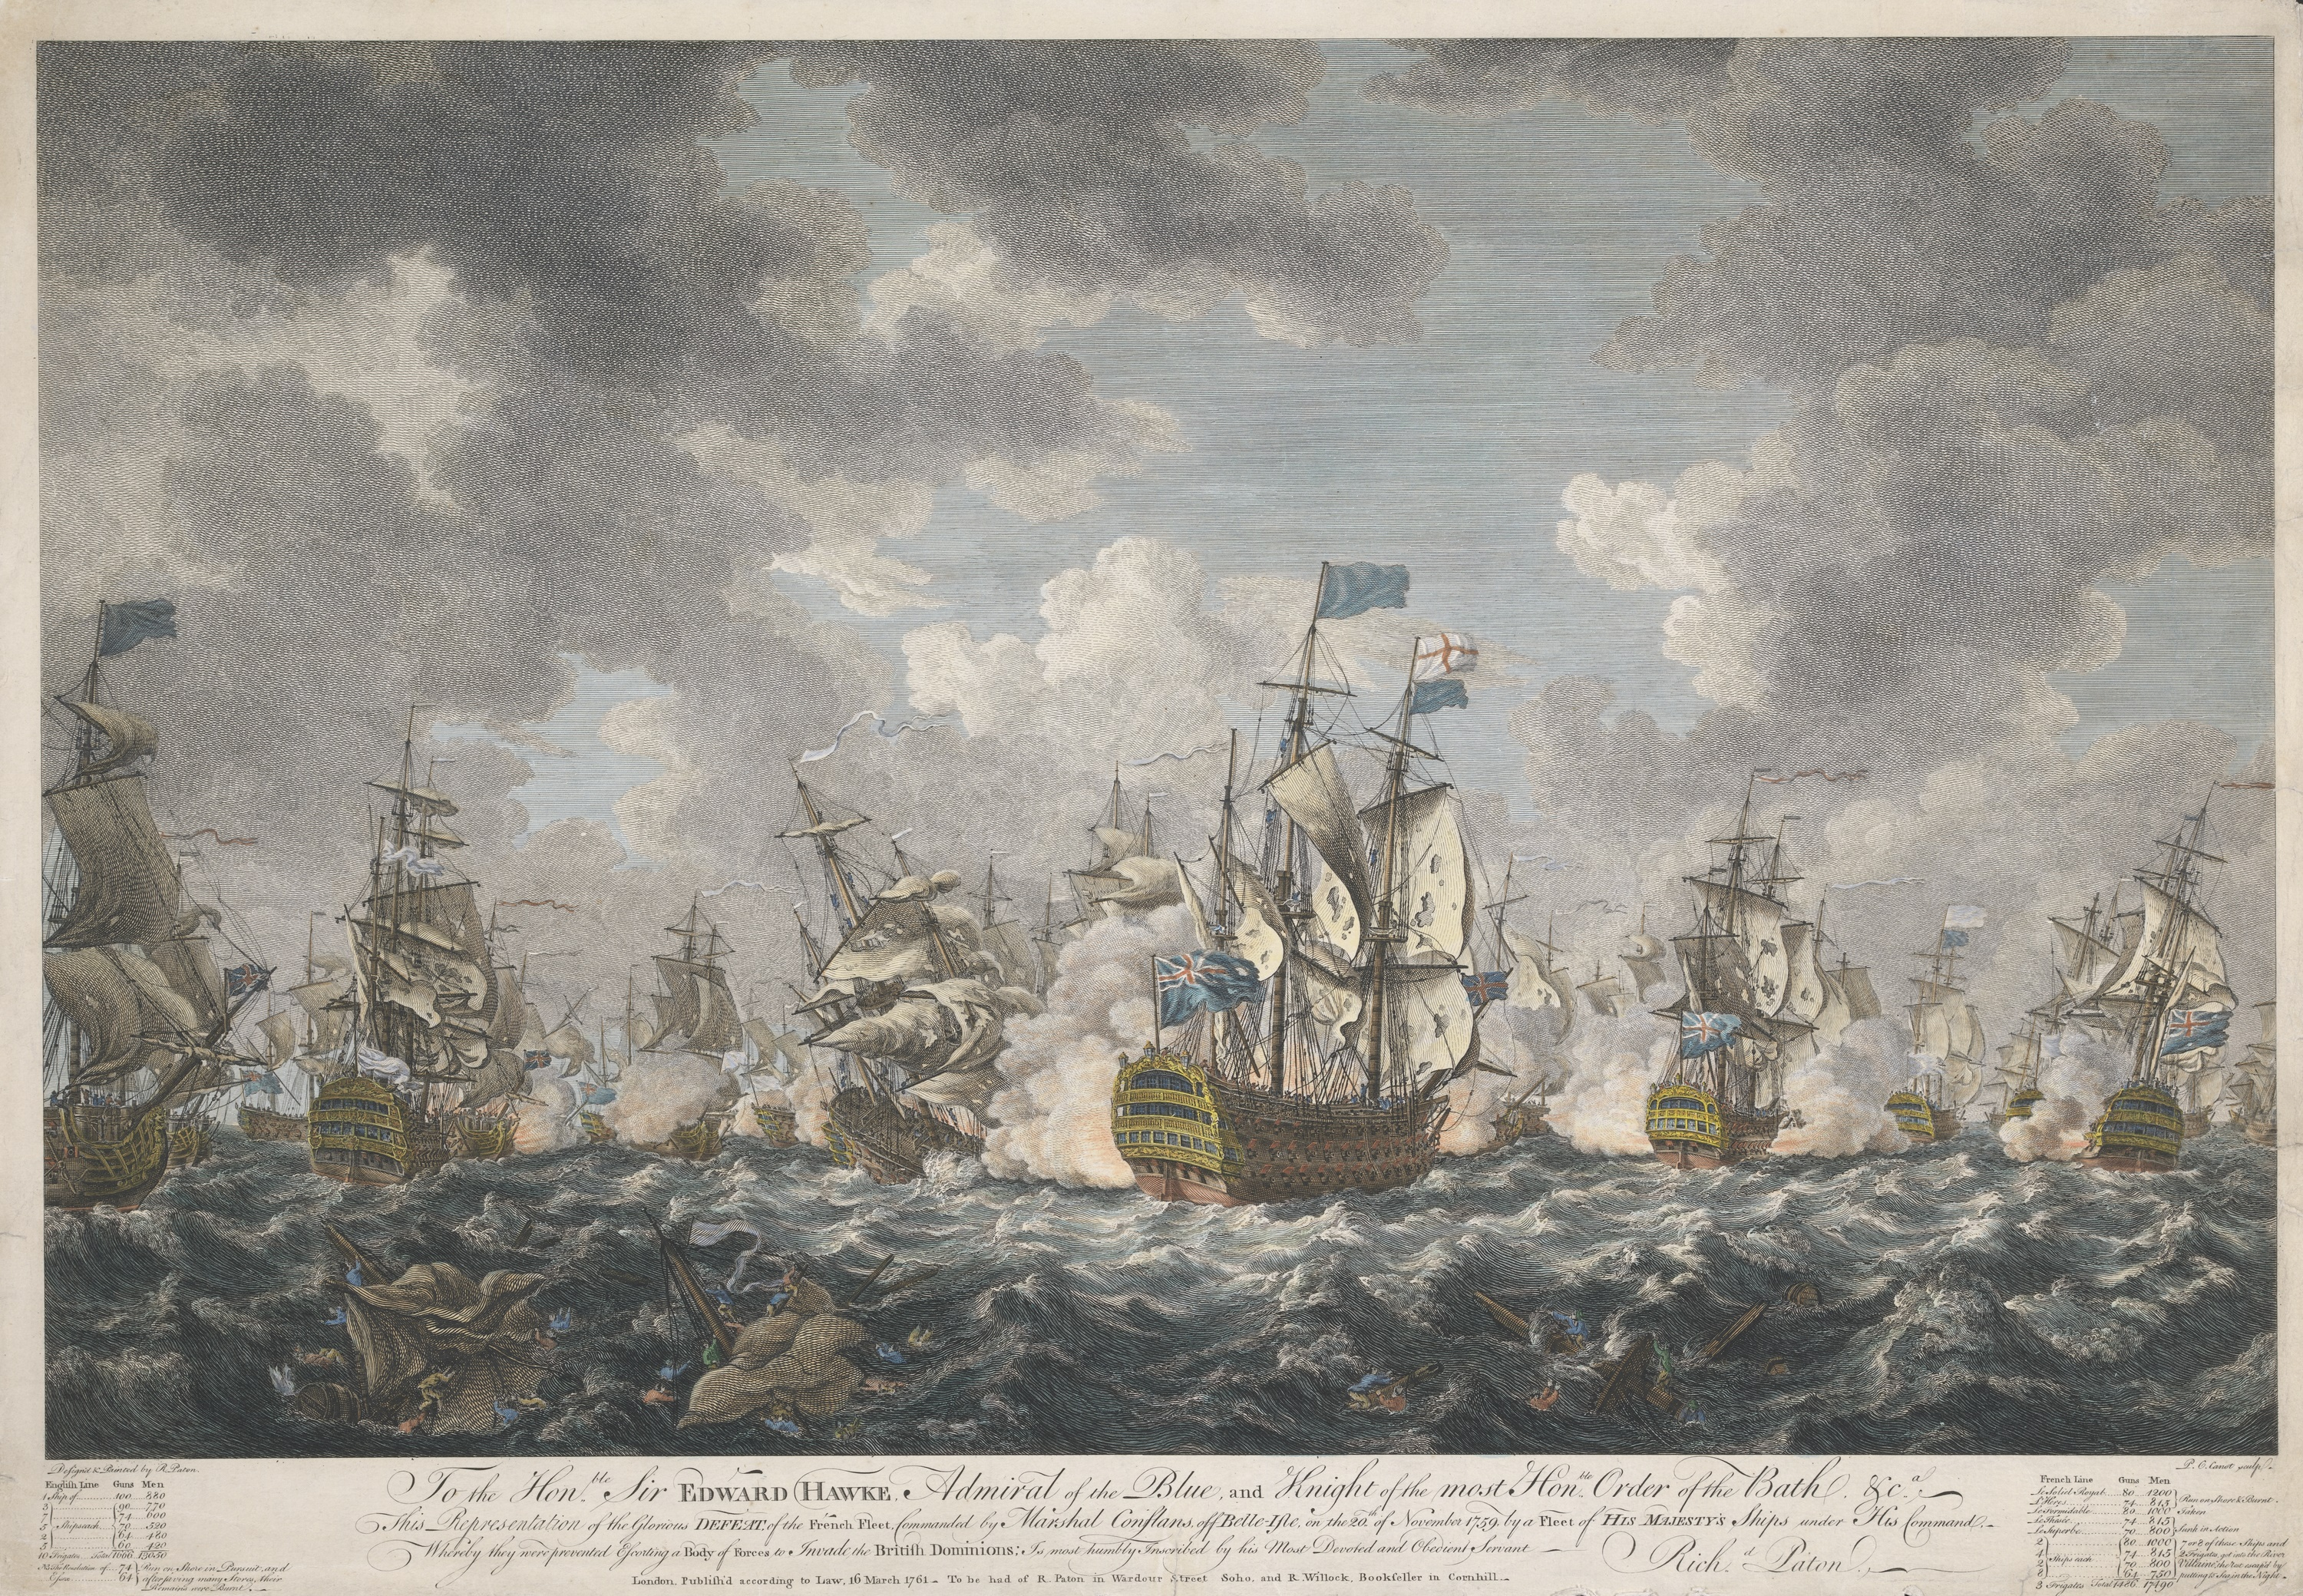 a history of the battle of quiberon bay Definition of quiberon bay, battle of – our online dictionary has quiberon bay, battle of information from the oxford companion to british history dictionary.